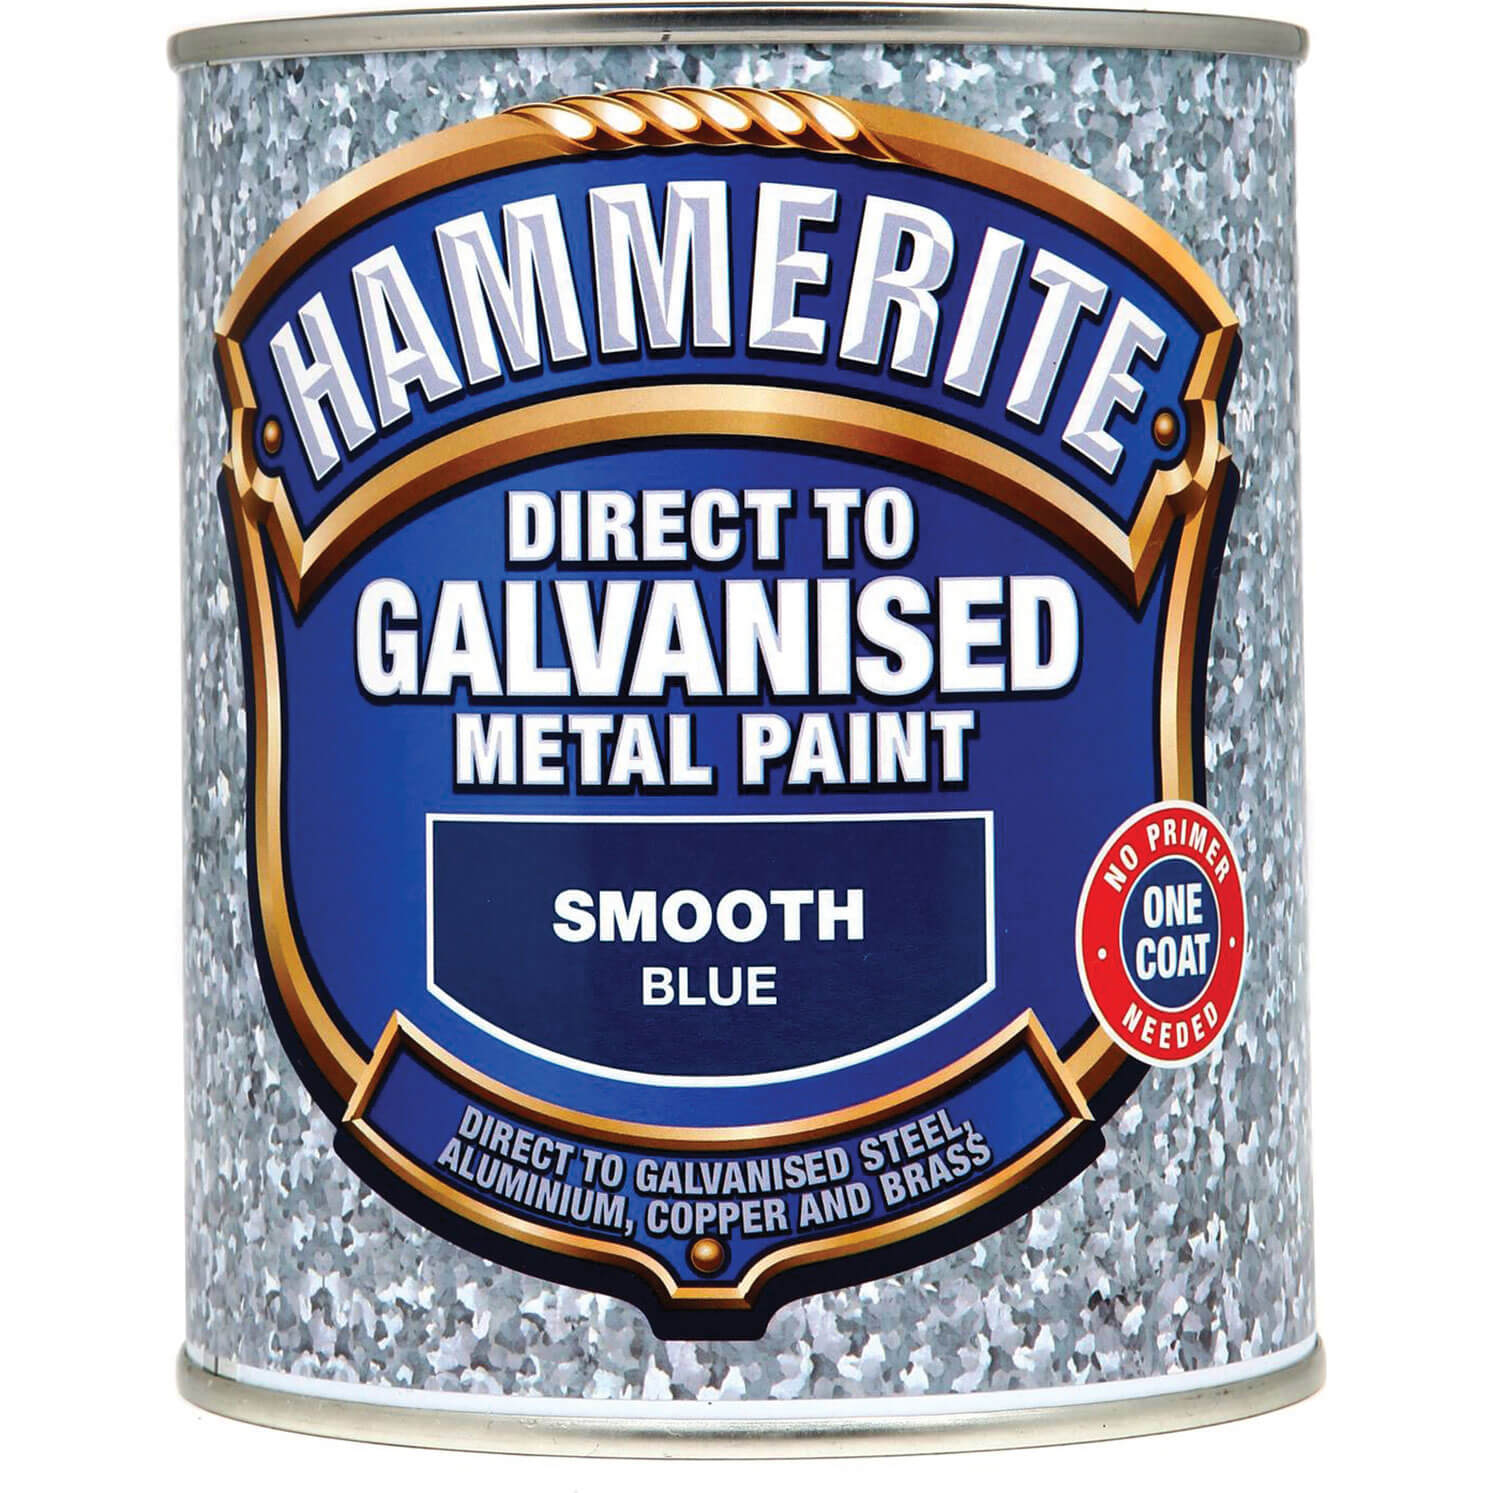 Image of Hammerite Direct to Galvanised Metal Paint Blue 750ml